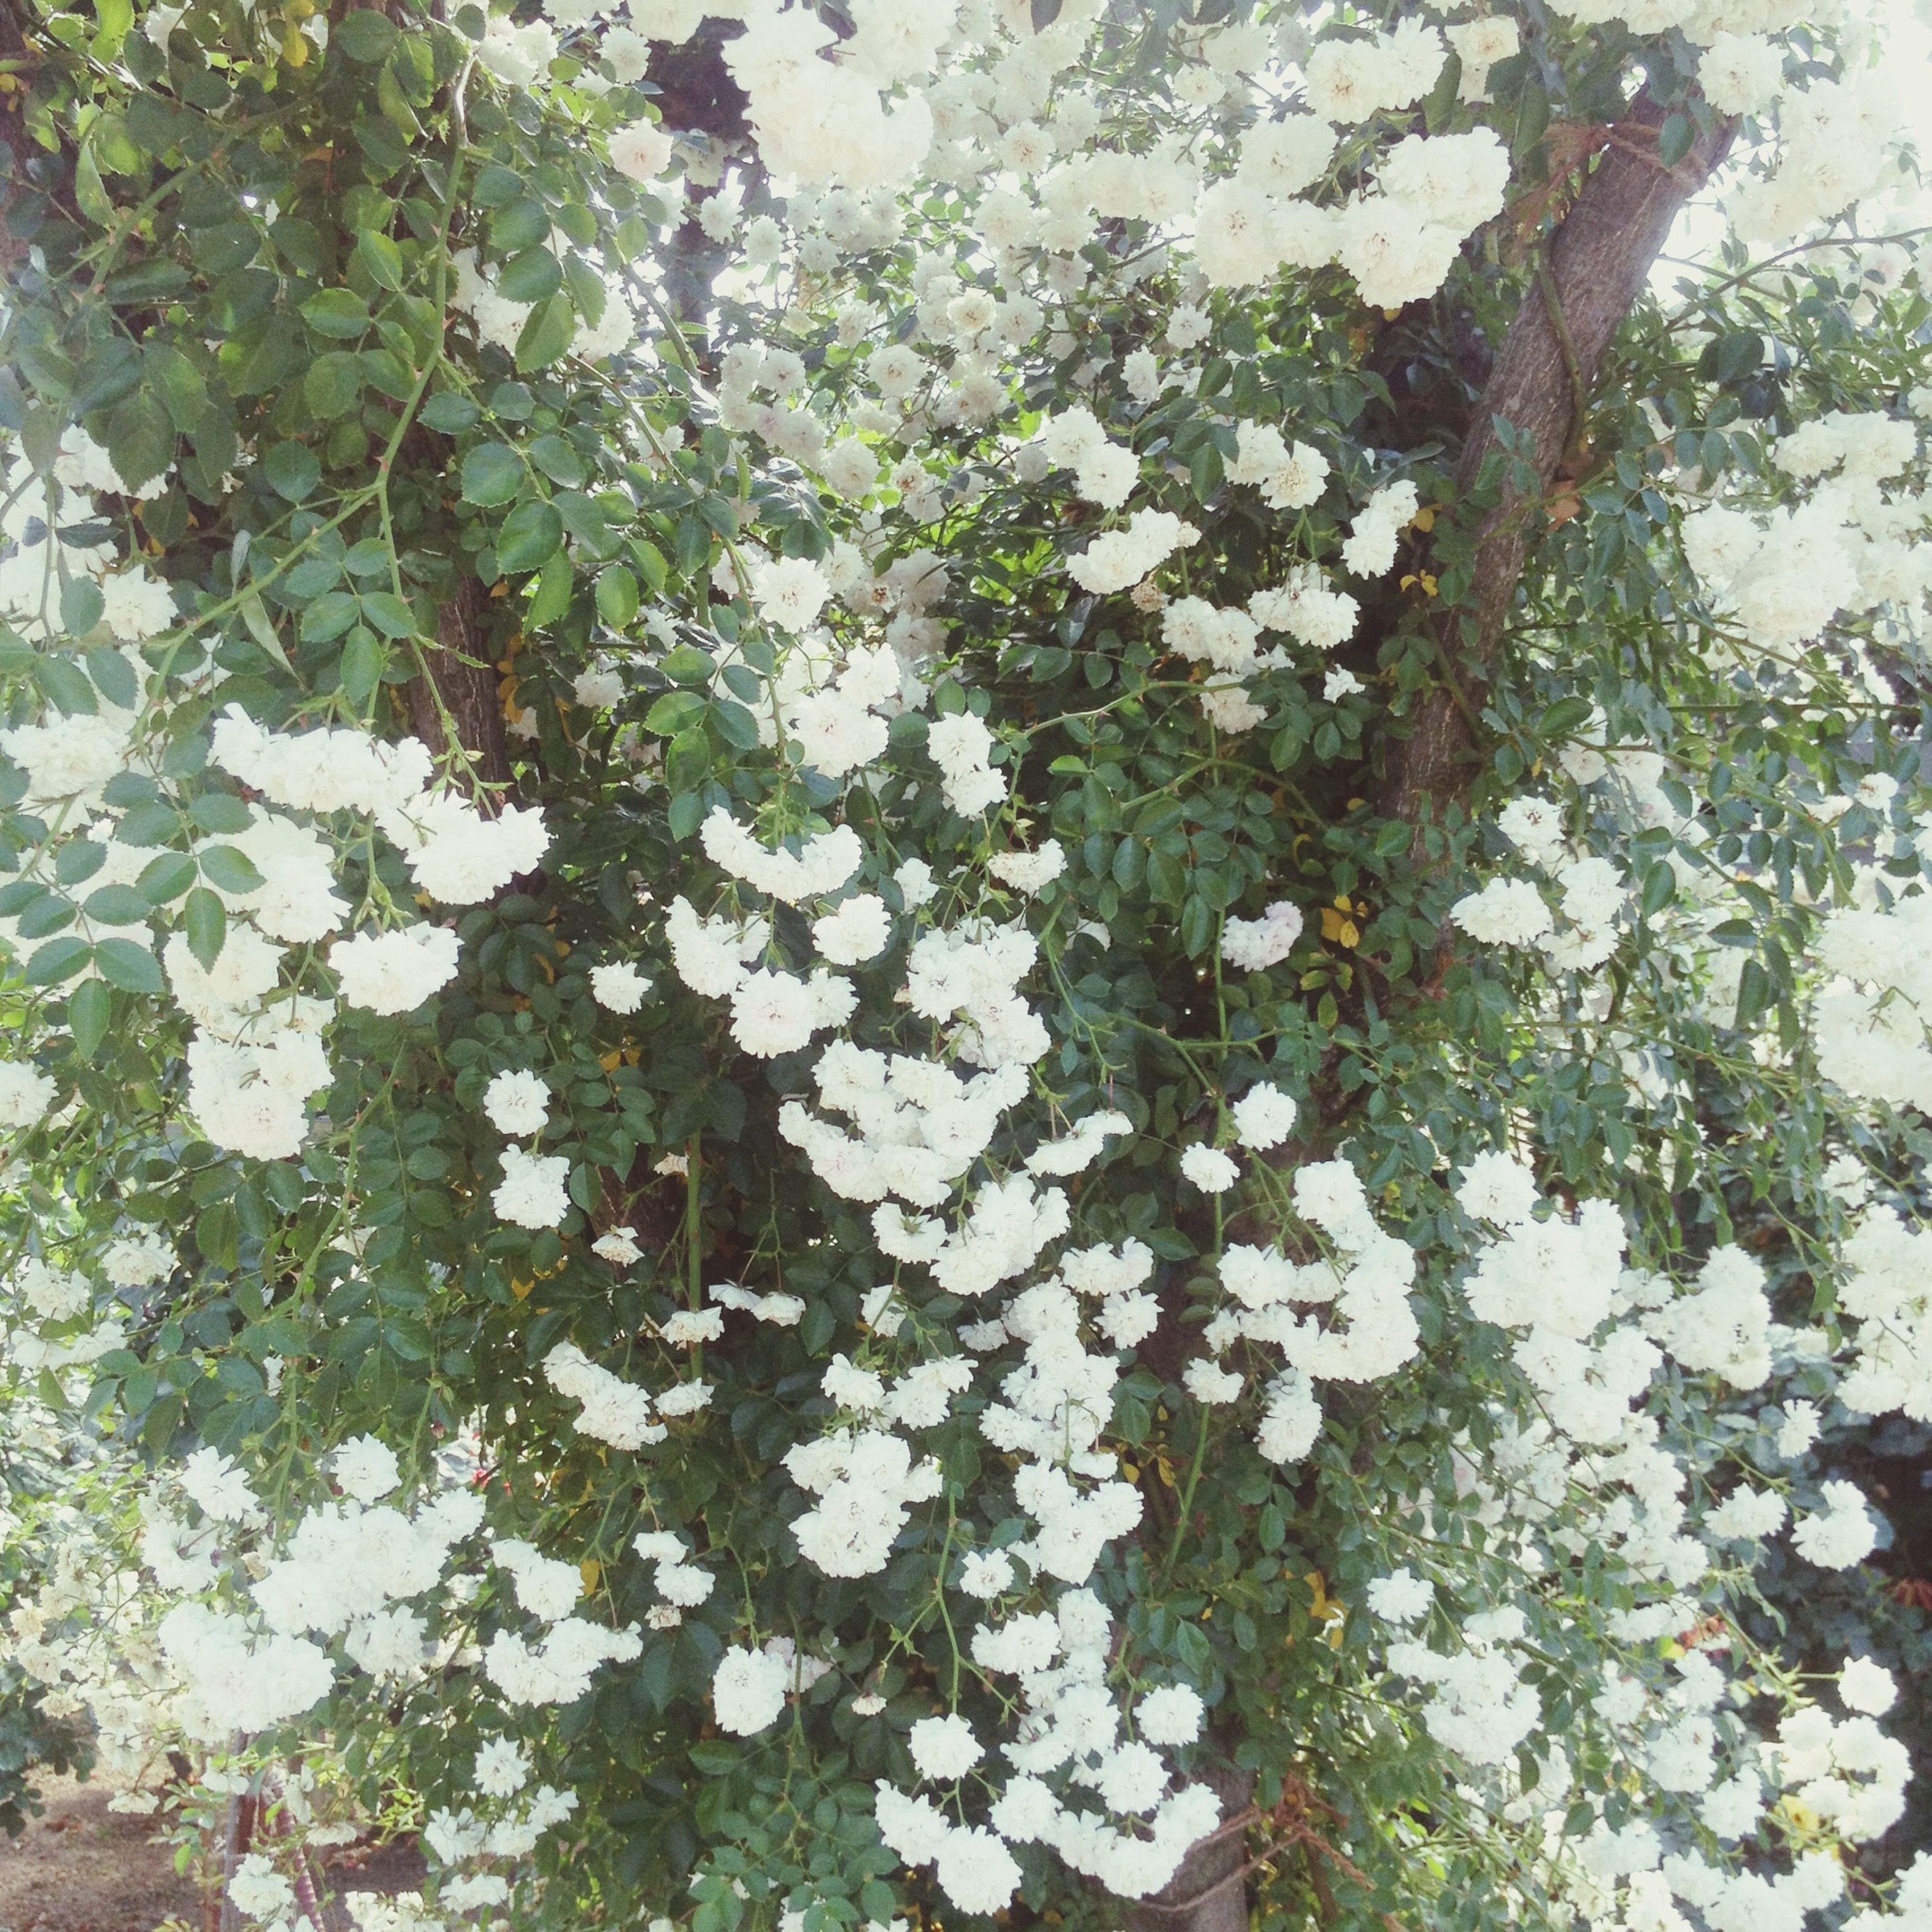 growth, flower, white color, nature, leaf, tree, beauty in nature, freshness, fragility, plant, branch, white, day, outdoors, blossom, close-up, no people, botany, growing, springtime